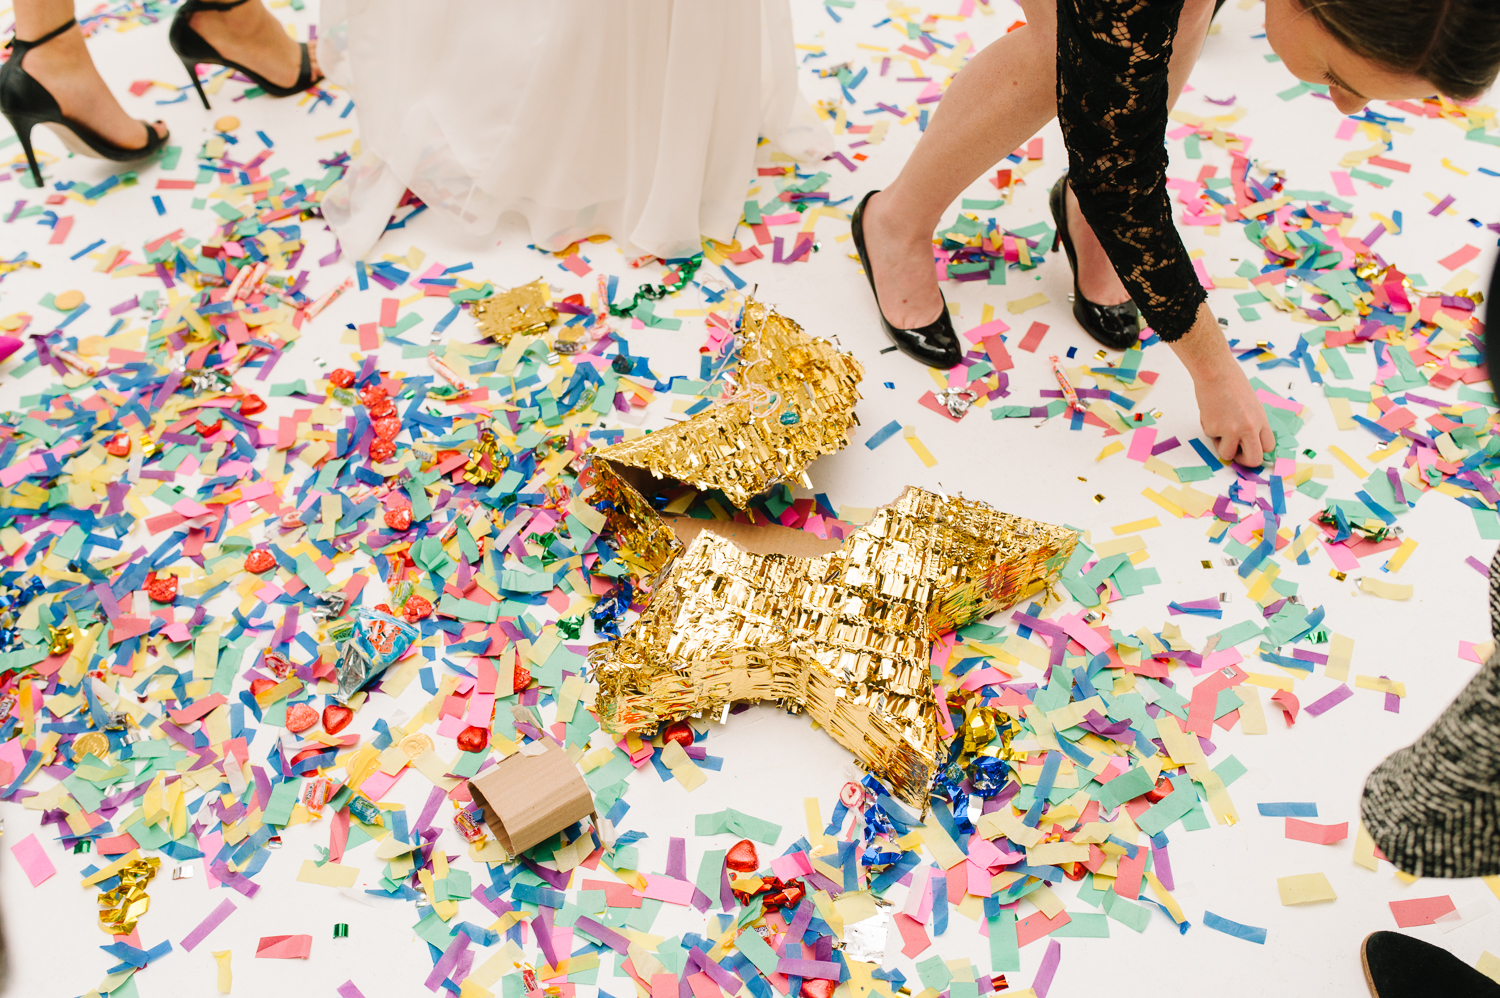 tara mcmullen photography four seasons toronto wedding photos jesi haack design wedding love by lynzie wedding confetti and champagne-024